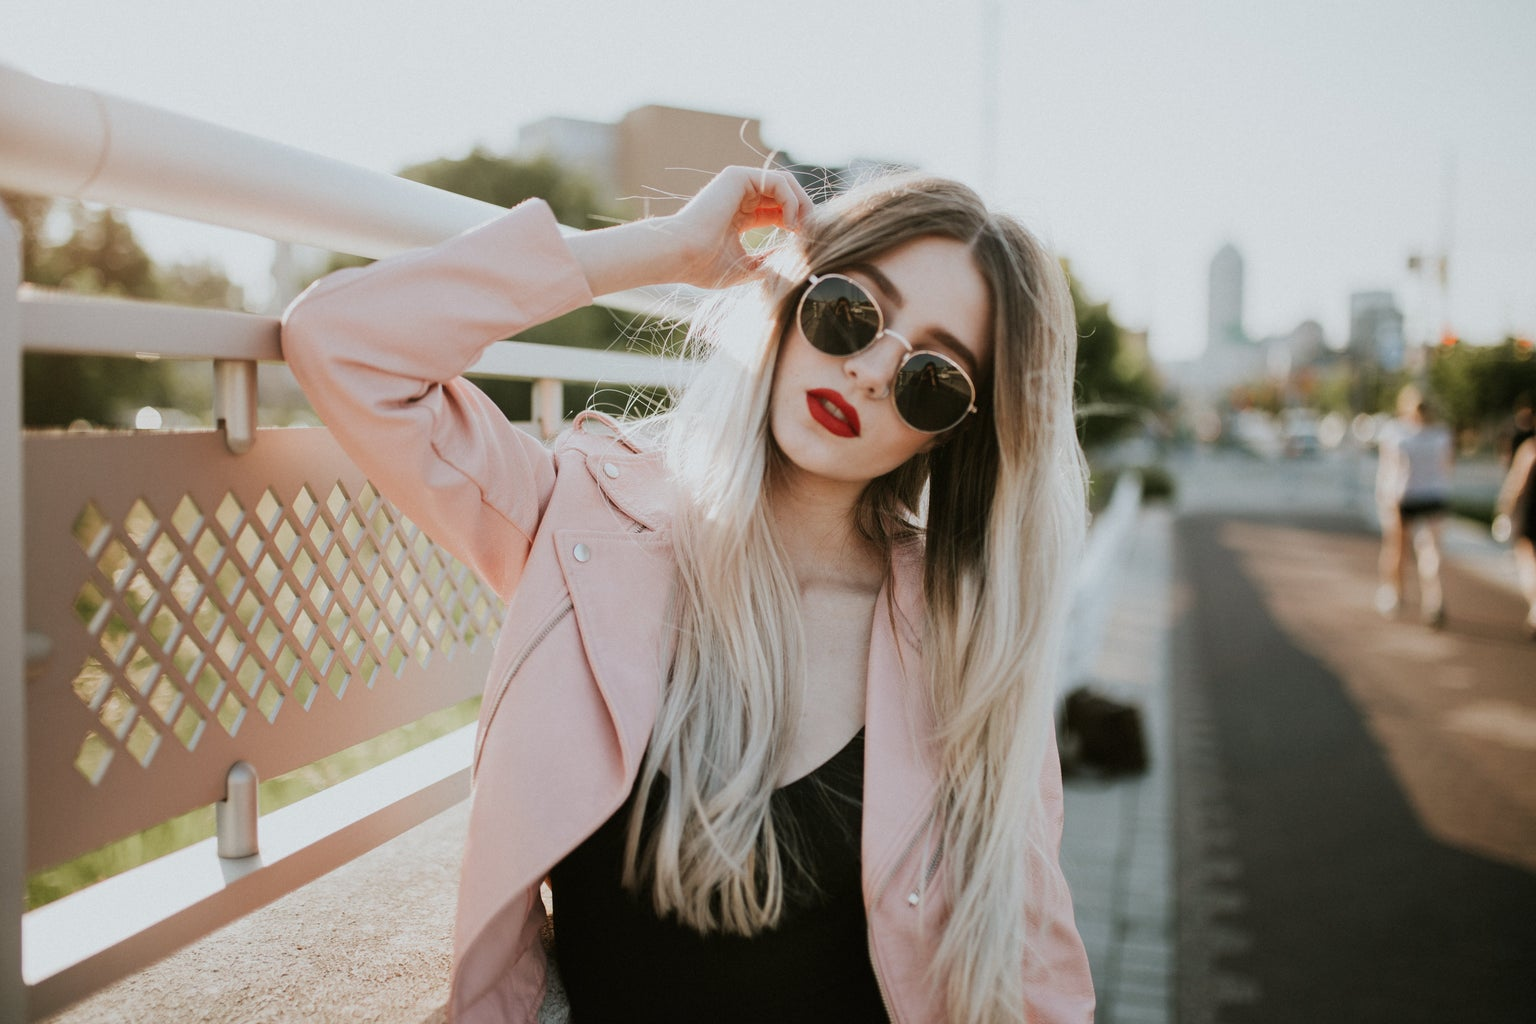 Girl With Shades 2